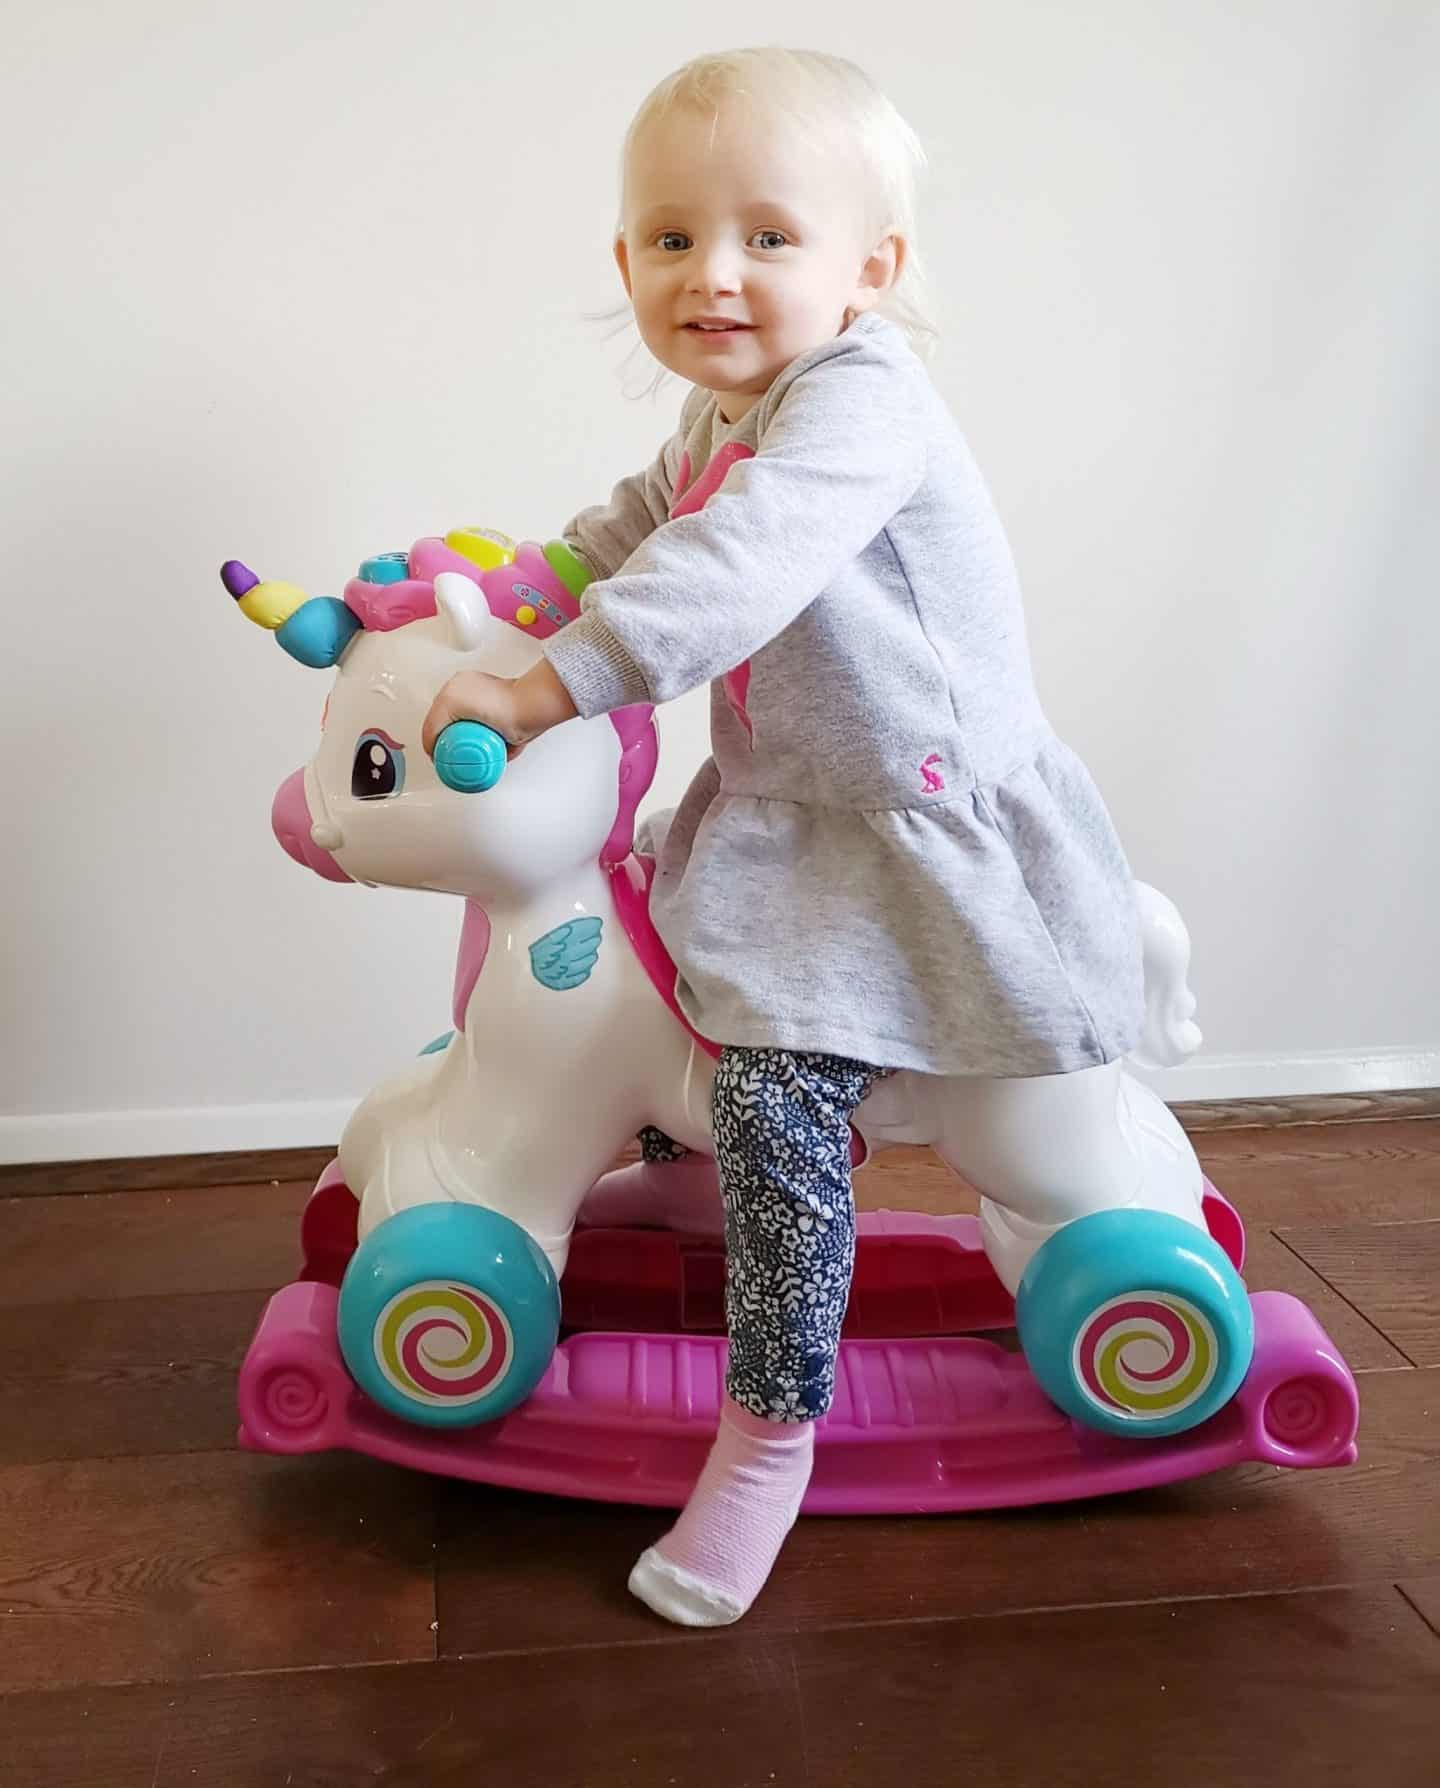 Baby Clementoni ride on unicorn